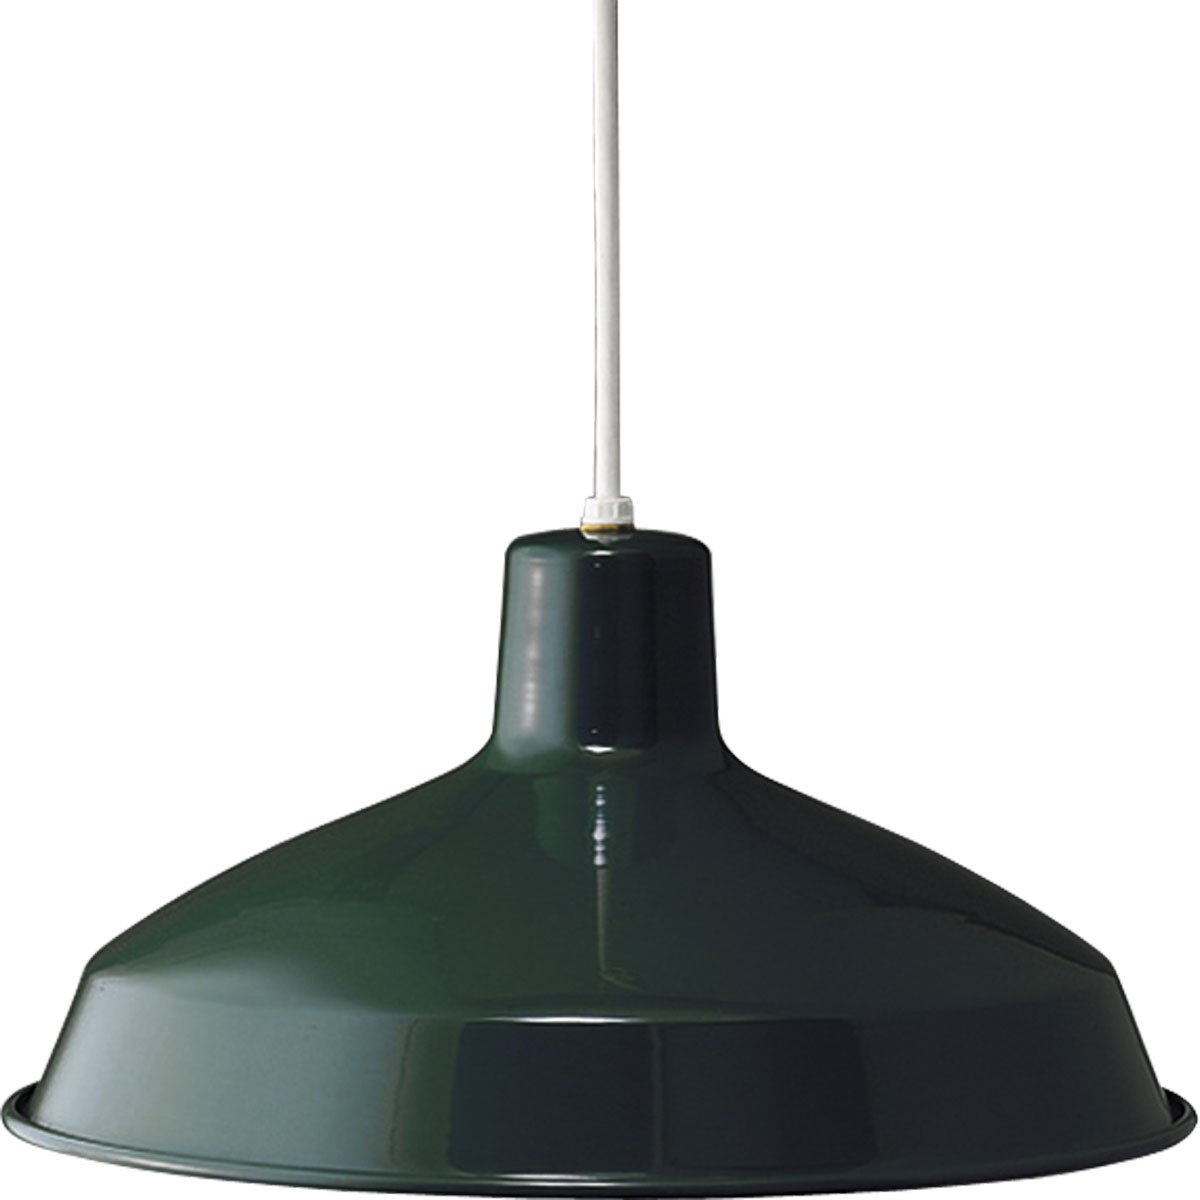 Progress lighting p5094 45 1 light cord hung pendant with white progress lighting p5094 45 1 light cord hung pendant with white interlined shade dark green ceiling pendant fixtures amazon arubaitofo Image collections